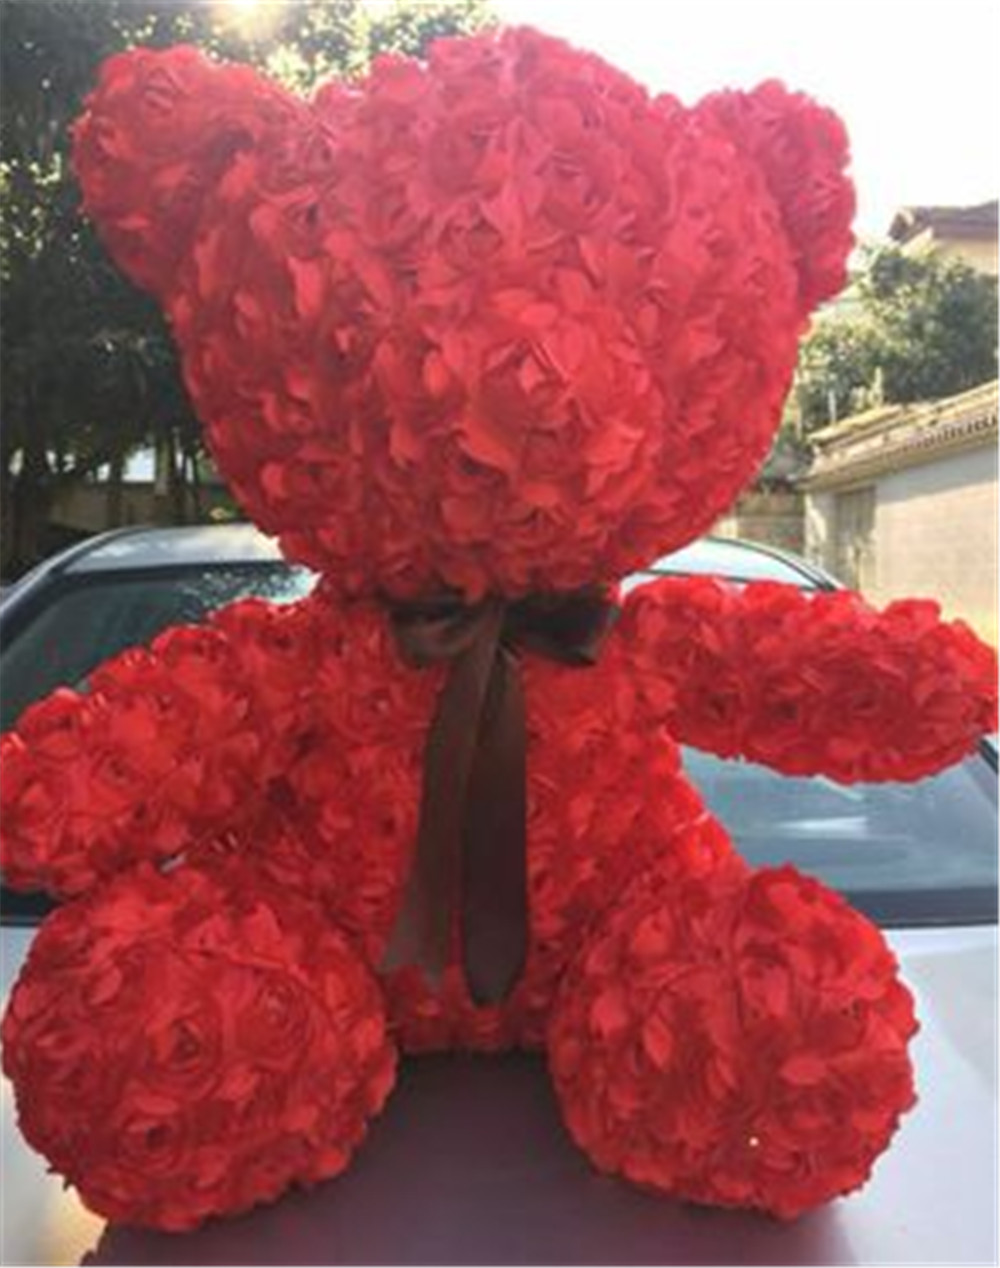 Fancytrader Red Rose Teddy Bear Toy Nice Quality Big Bear Teddy Doll 70cm 28inch for Kids Adults Gifts4